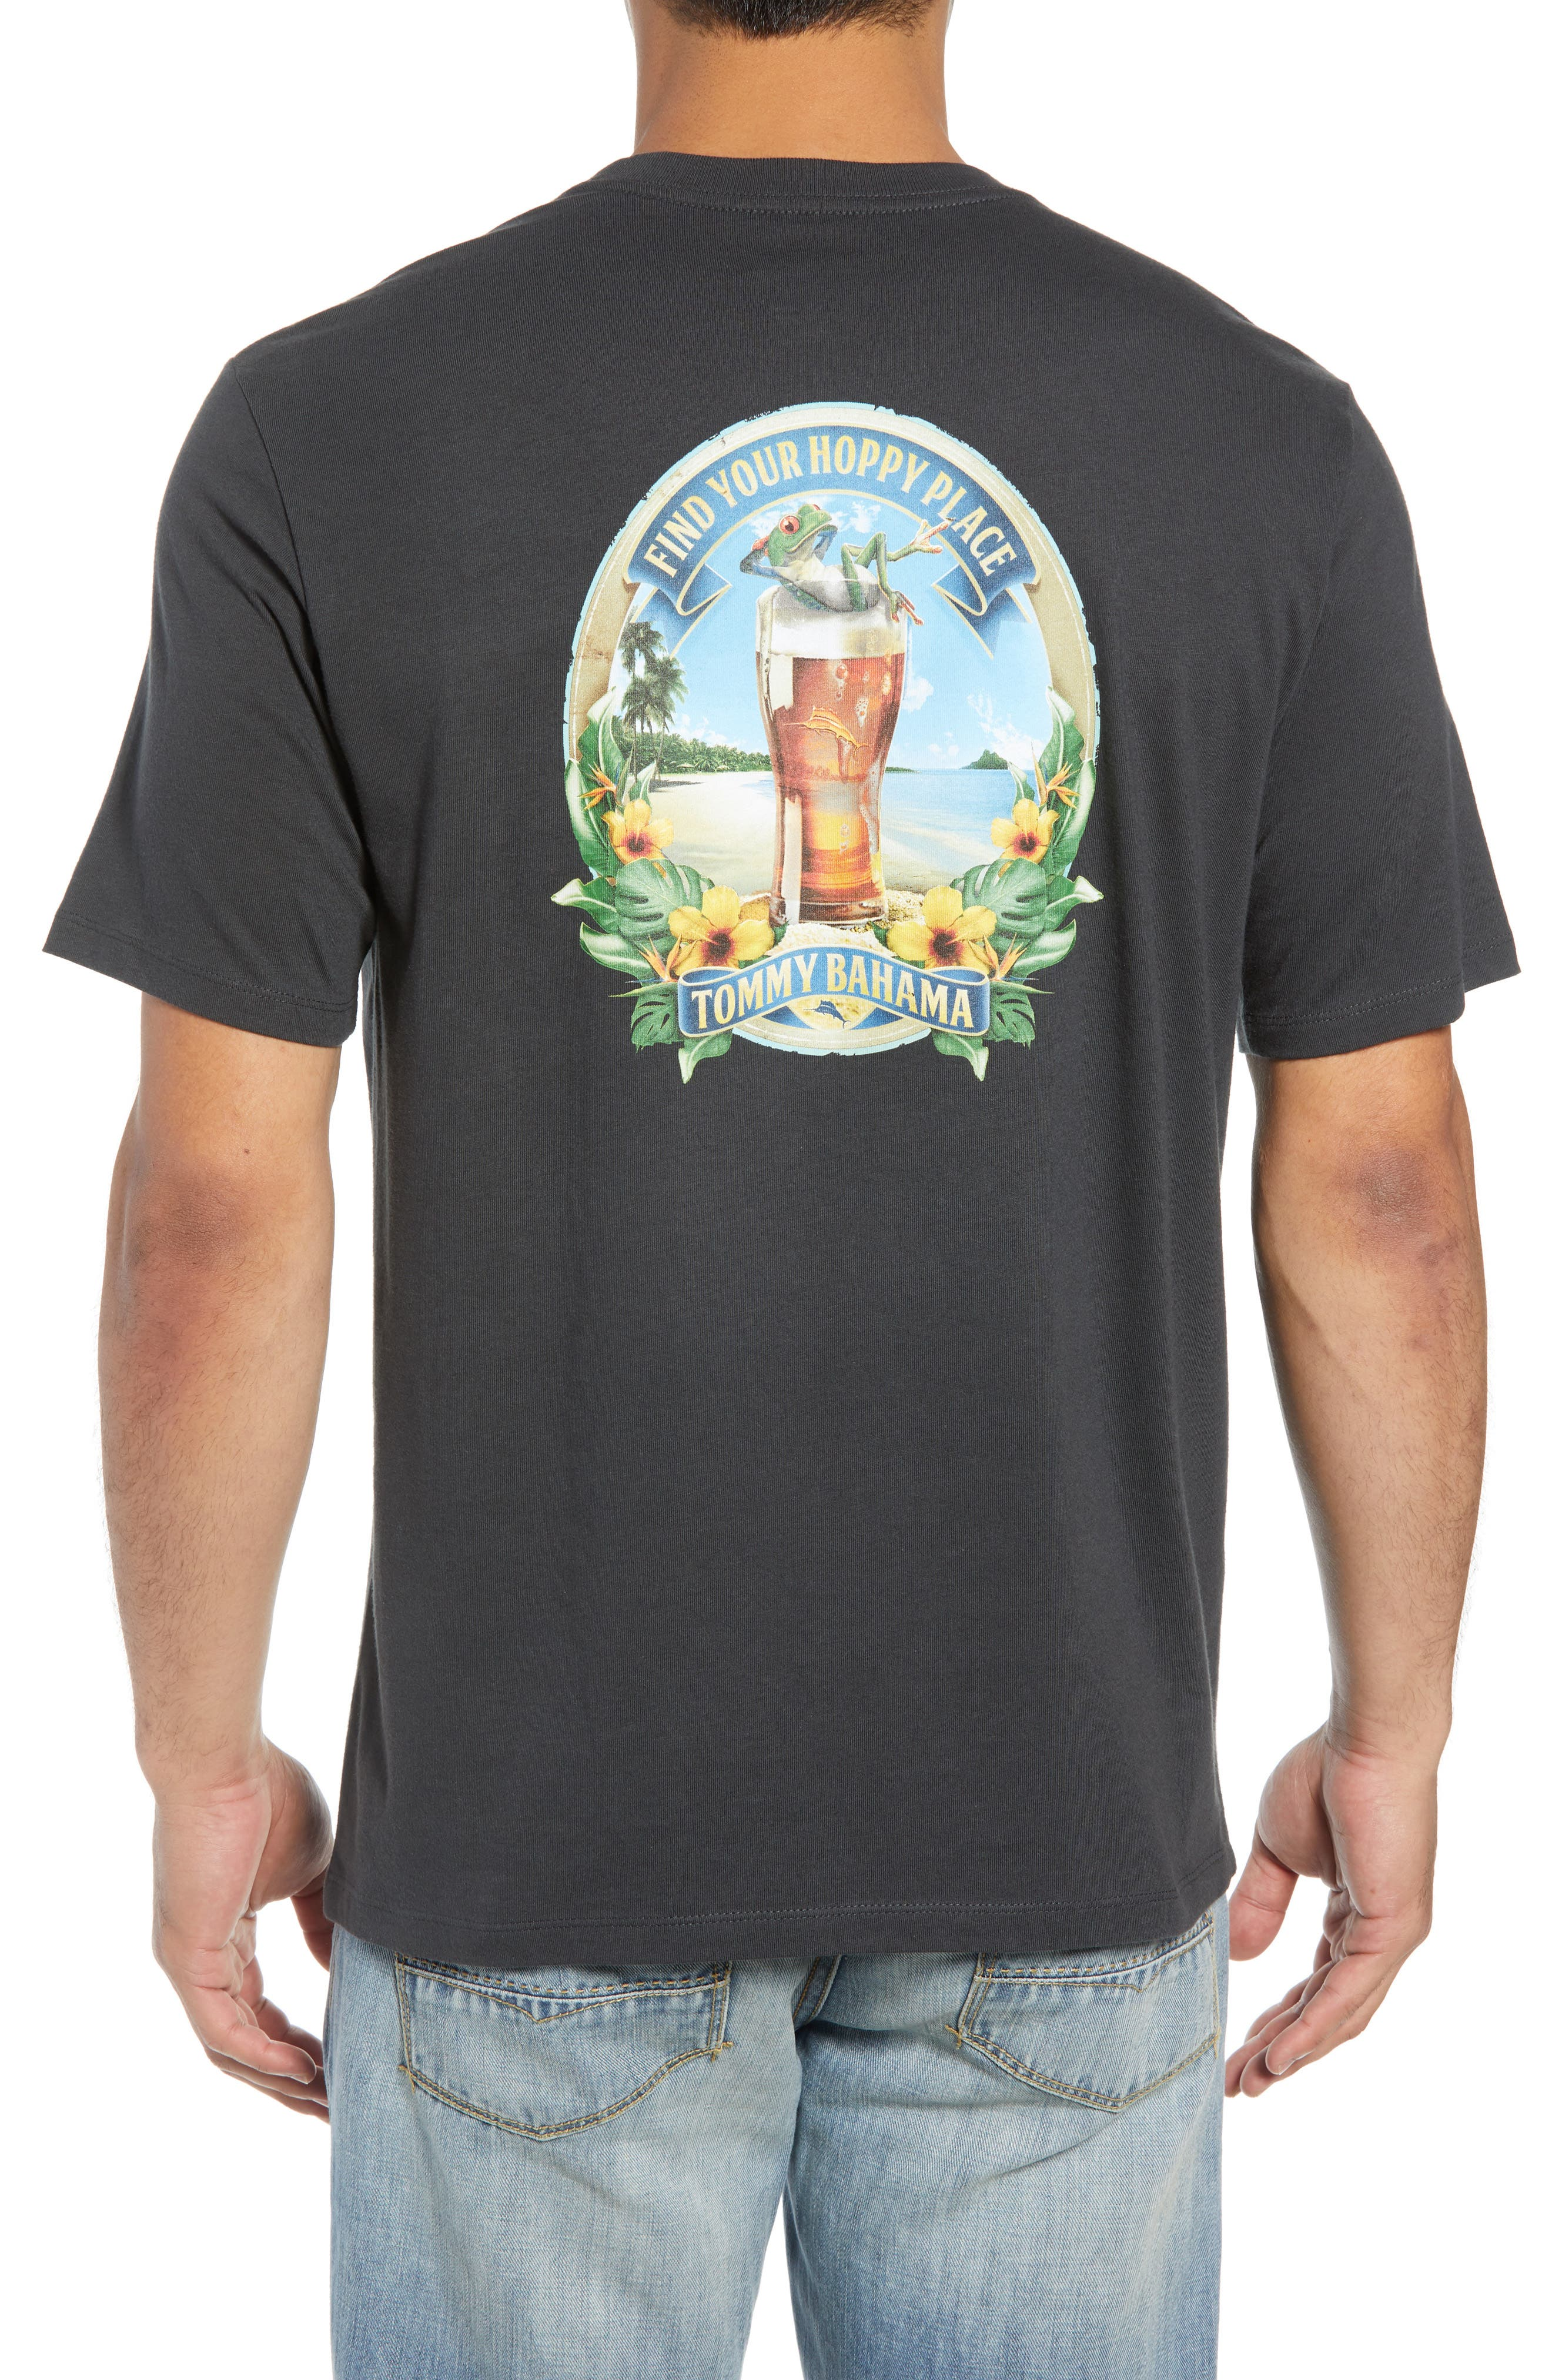 TOMMY BAHAMA,                             Find your Hoppy Place T-Shirt,                             Alternate thumbnail 2, color,                             001